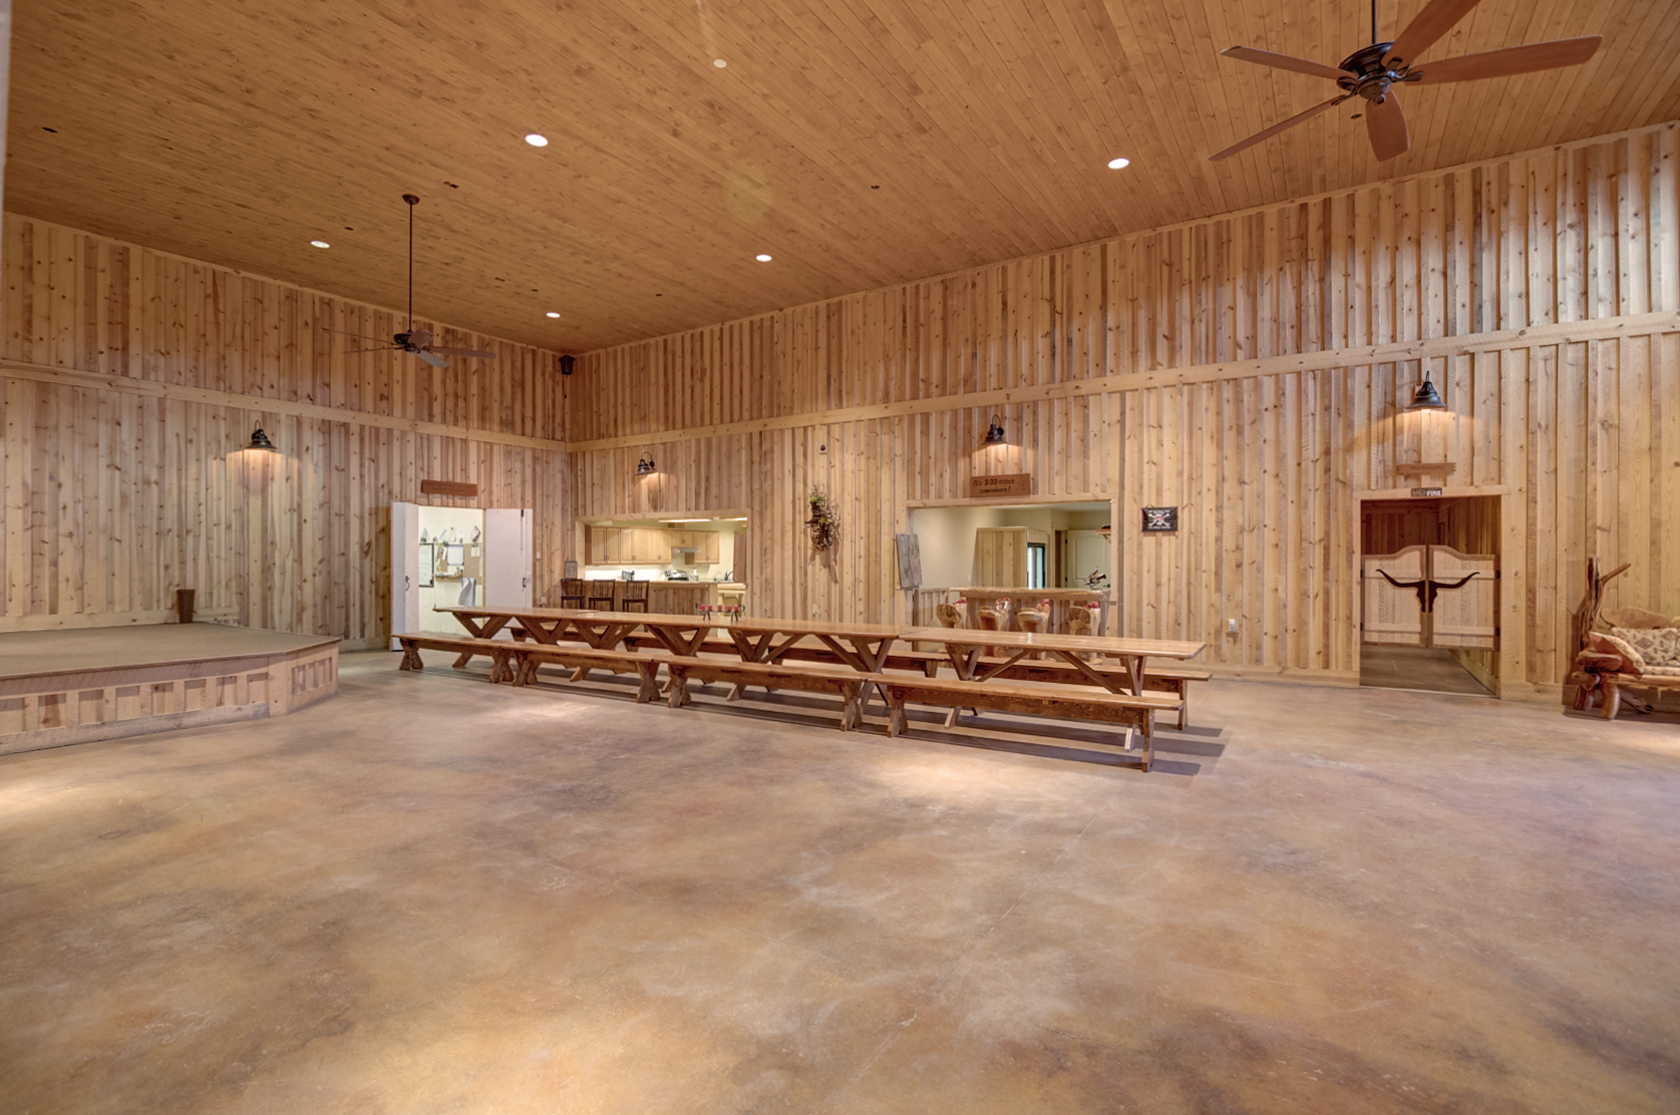 The Event Center Barn Elizabeth McQueen Realty Willow Springs